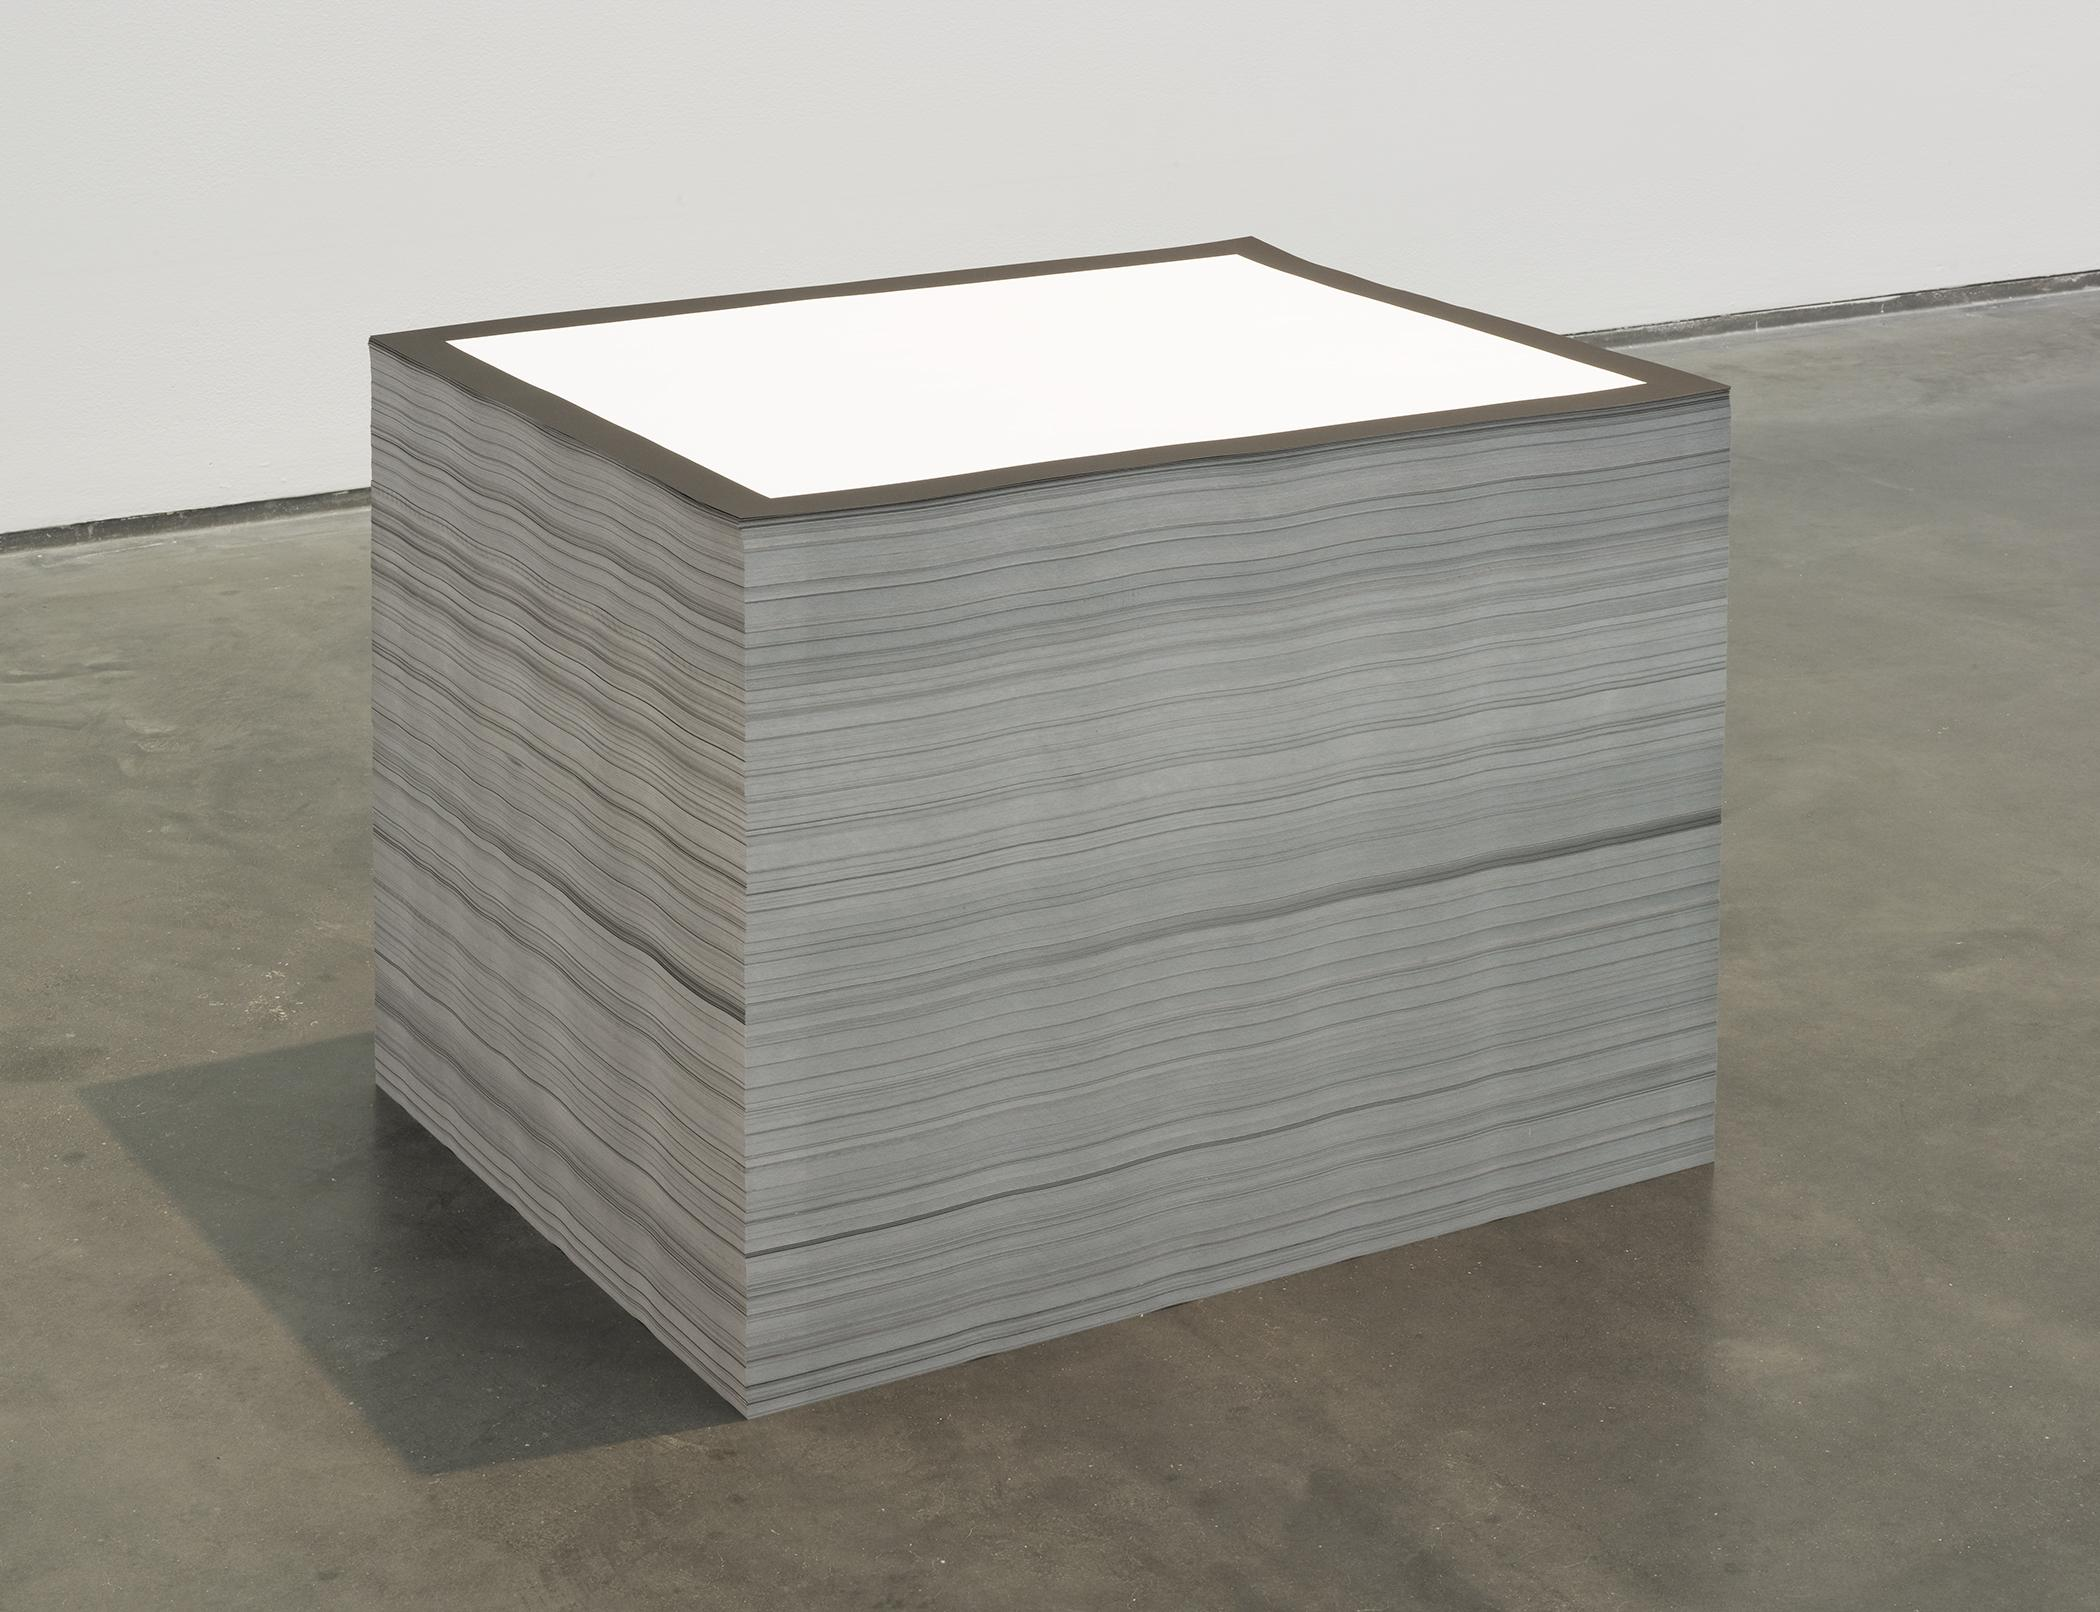 A large and neat stack of white paper with a black border sits on a concrete floor.